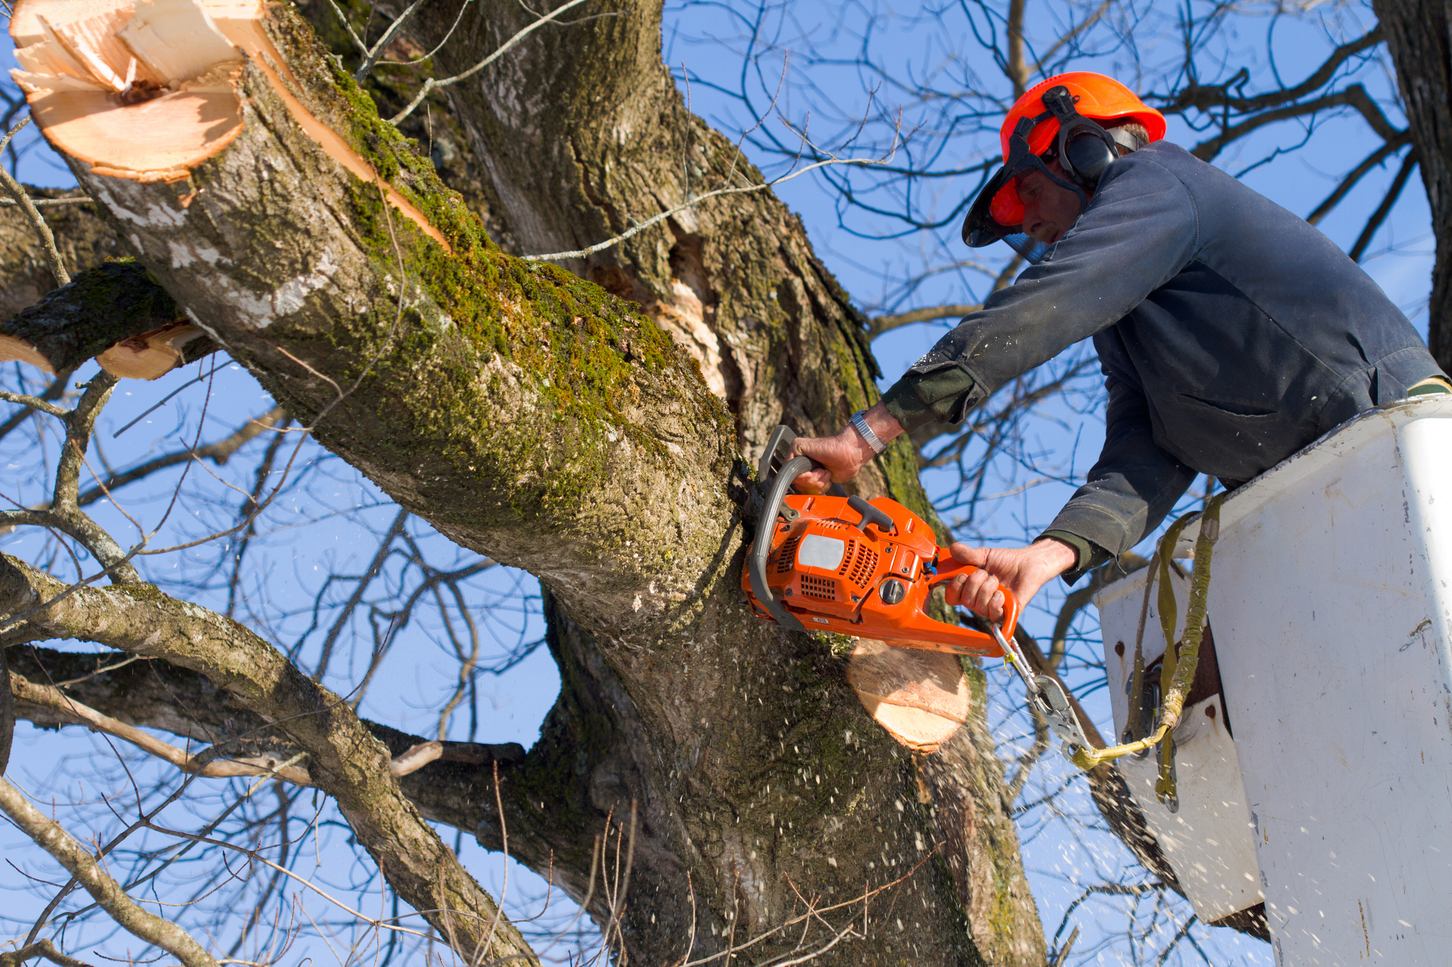 Common Tree Pruning Practices You Should Avoid